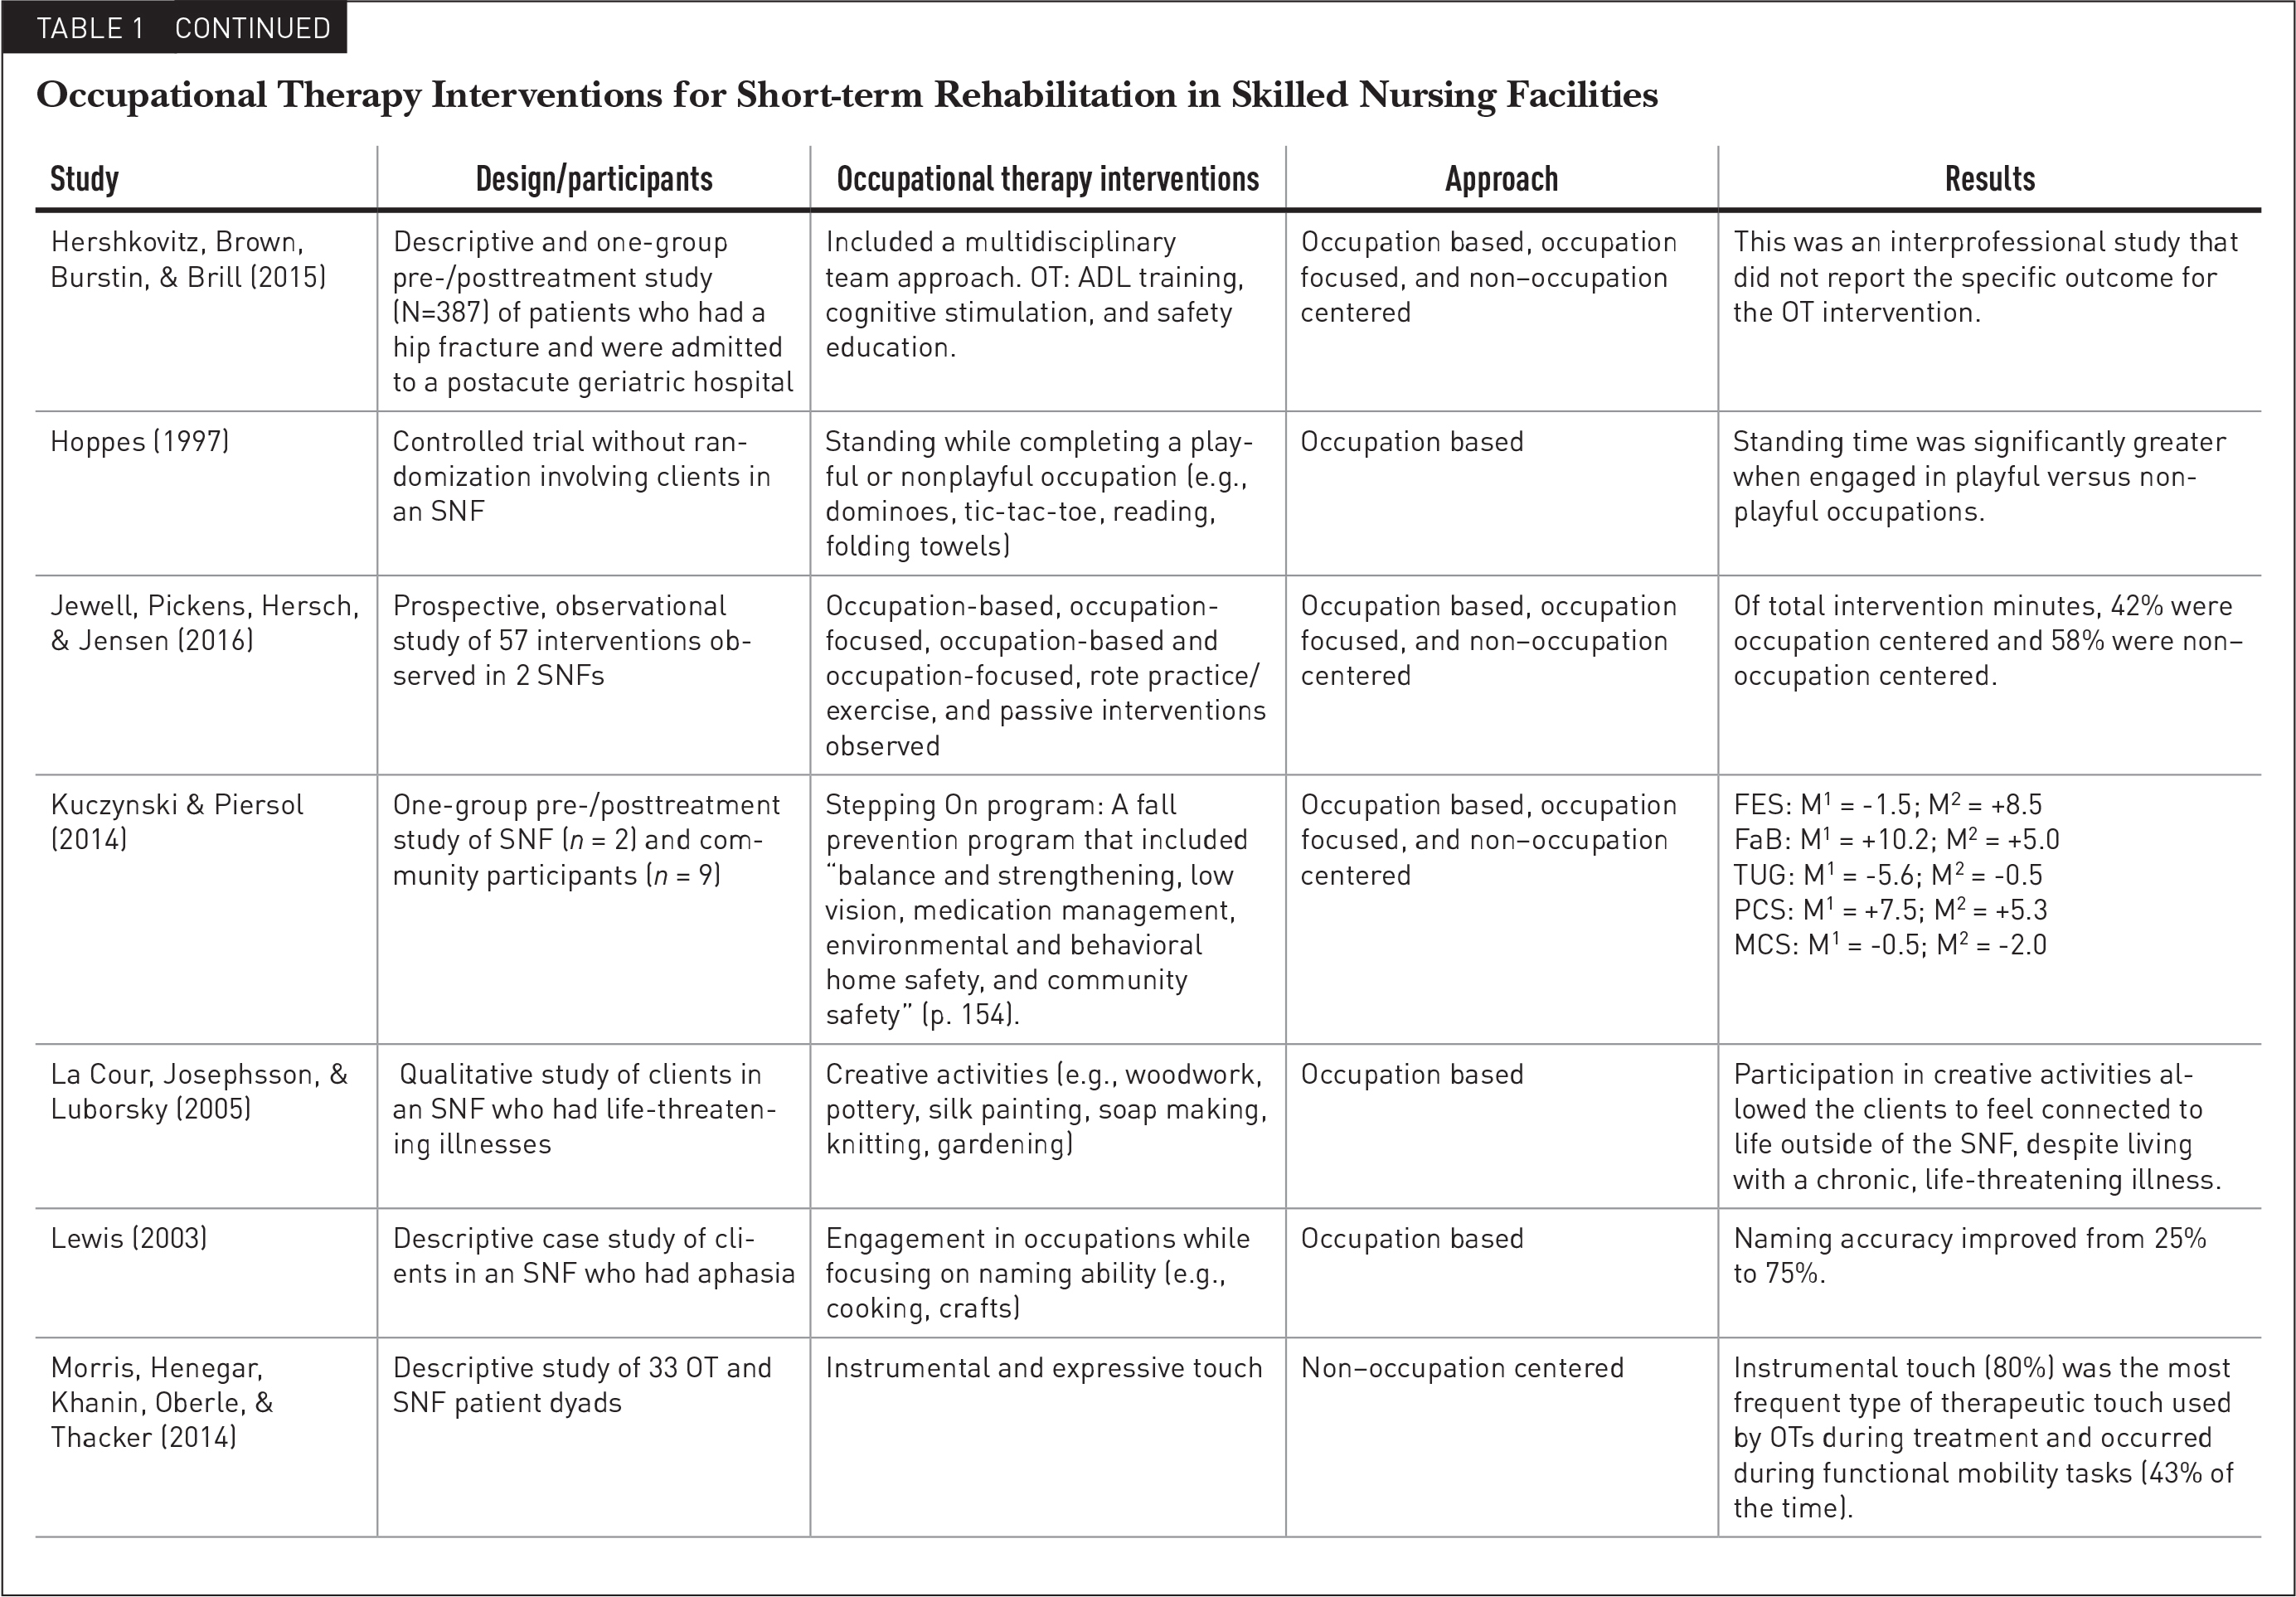 Occupational Therapy Interventions for Short-term Rehabilitation in Skilled Nursing Facilities